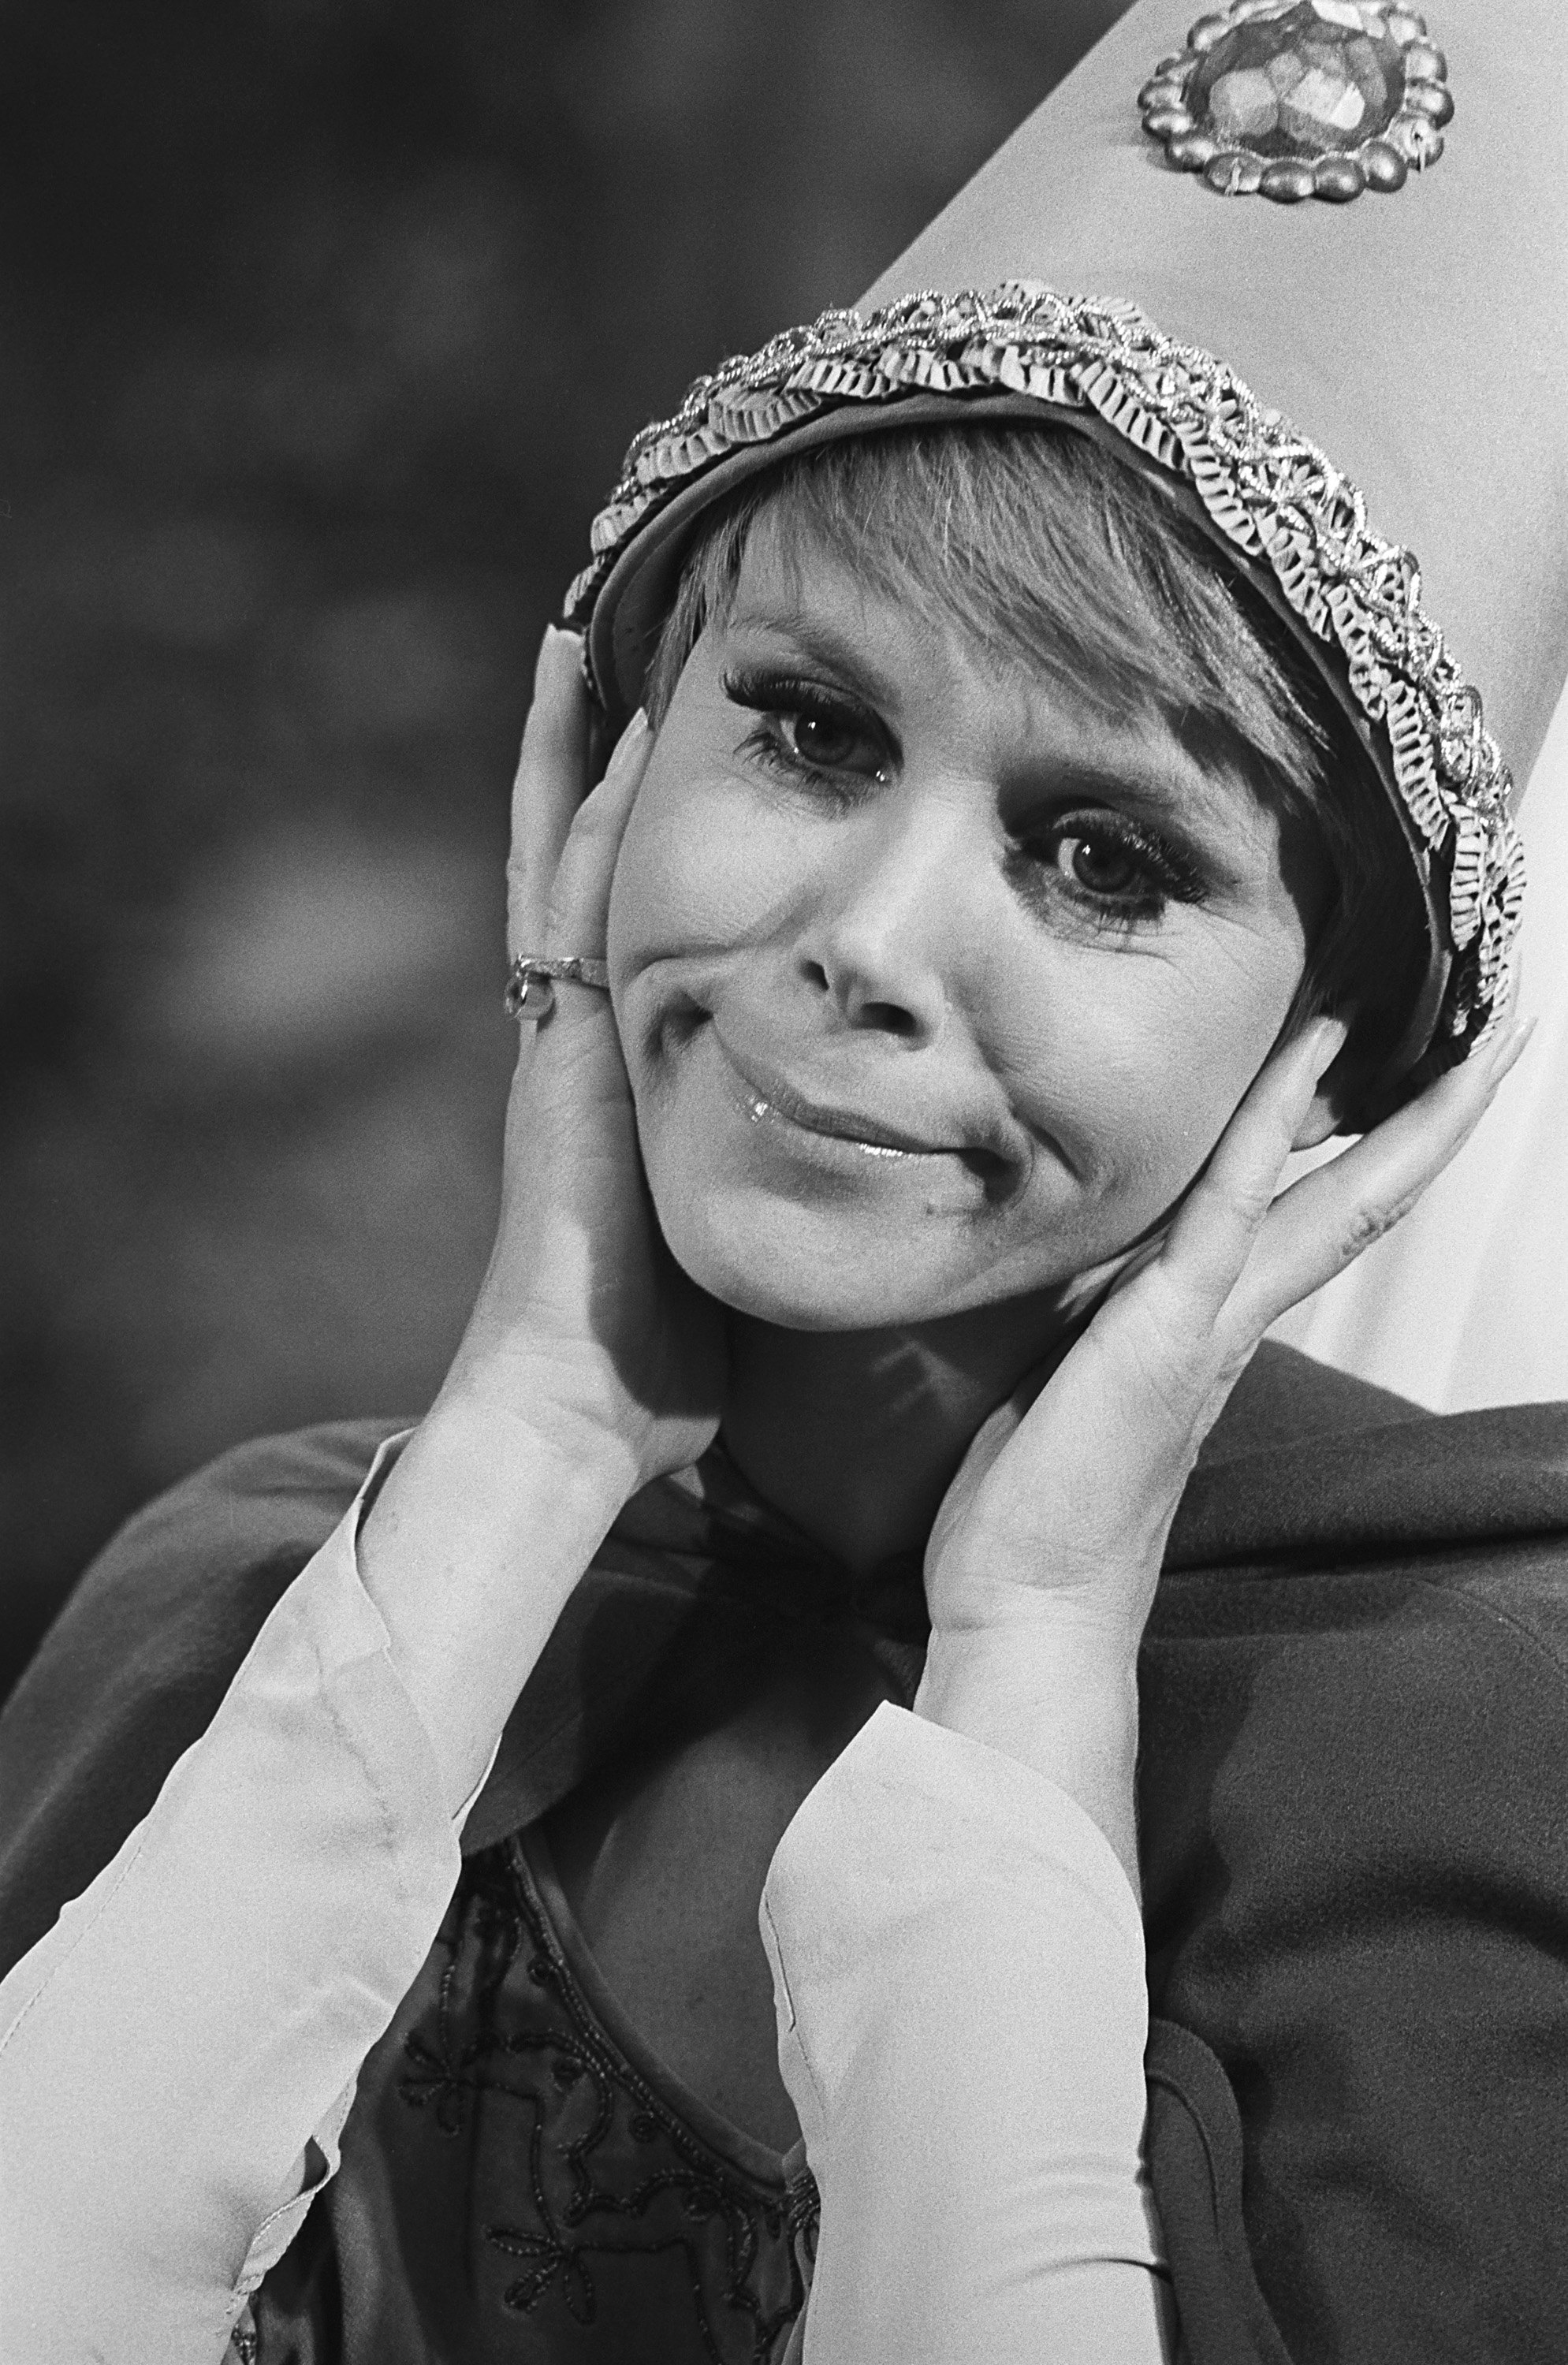 Judy Carne on Rowan & Martin's Laugh-In, aired on Oct. 28, 1968